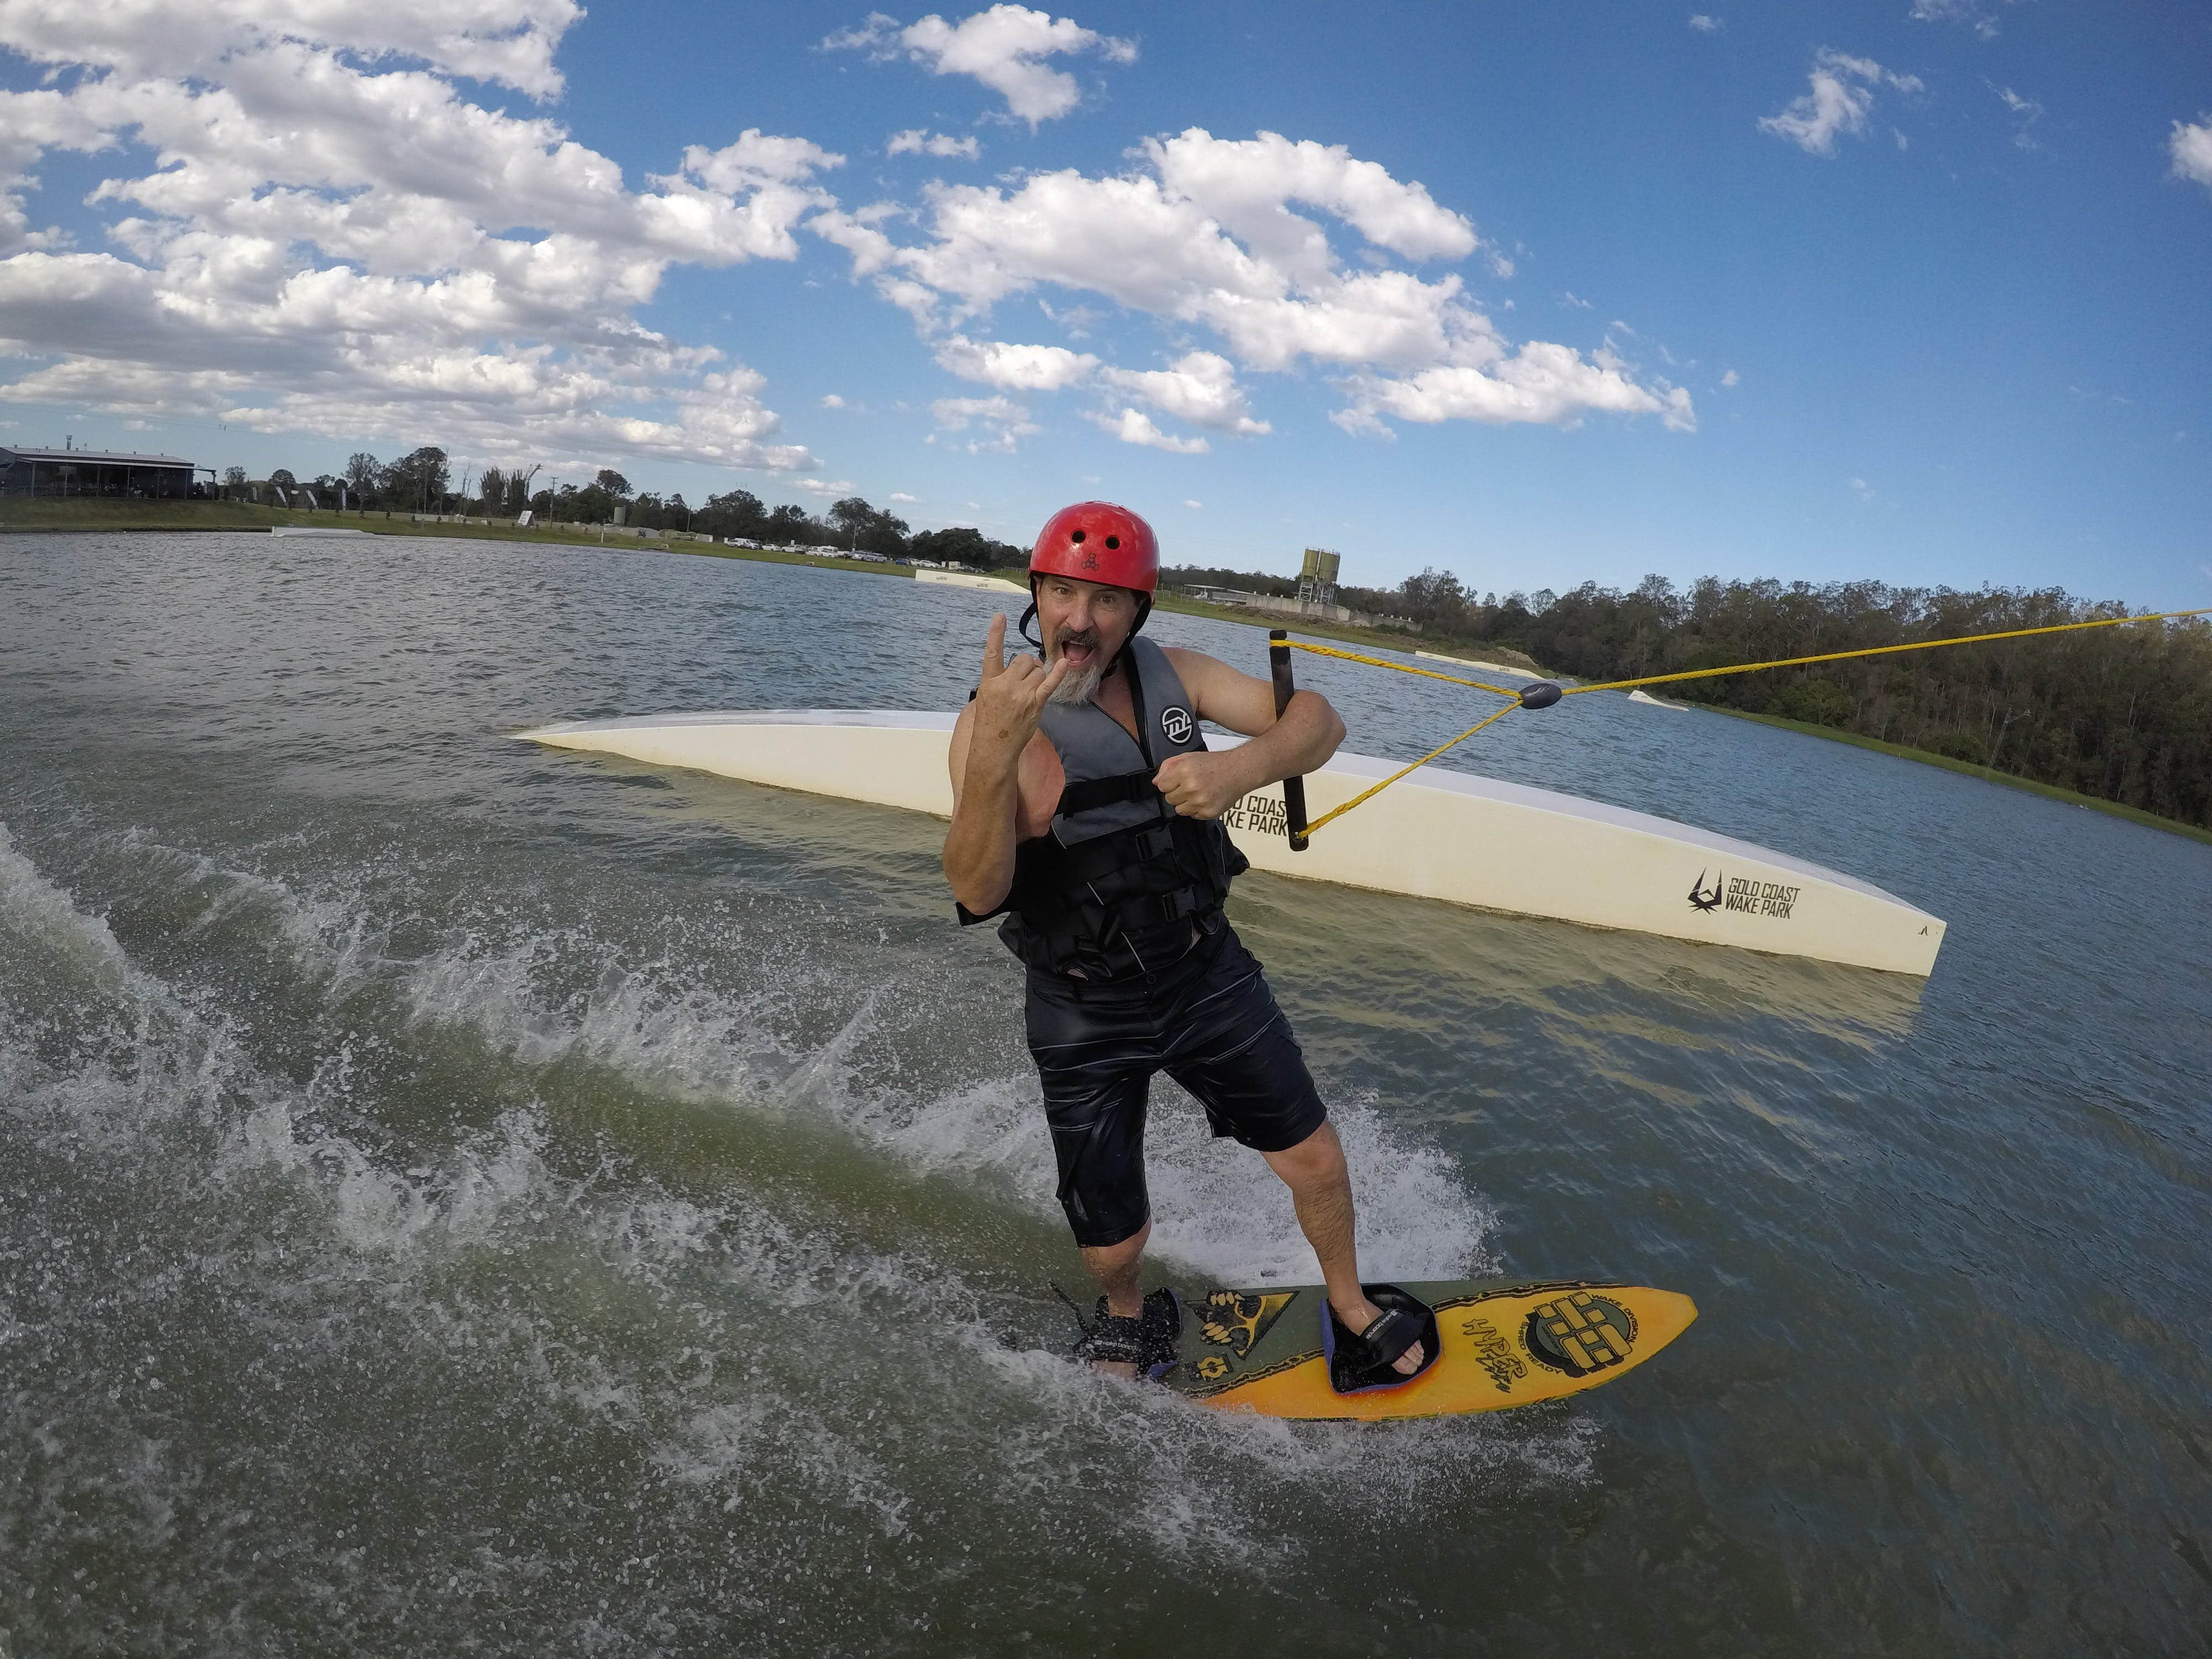 GC Wake Park - Attractions Melbourne